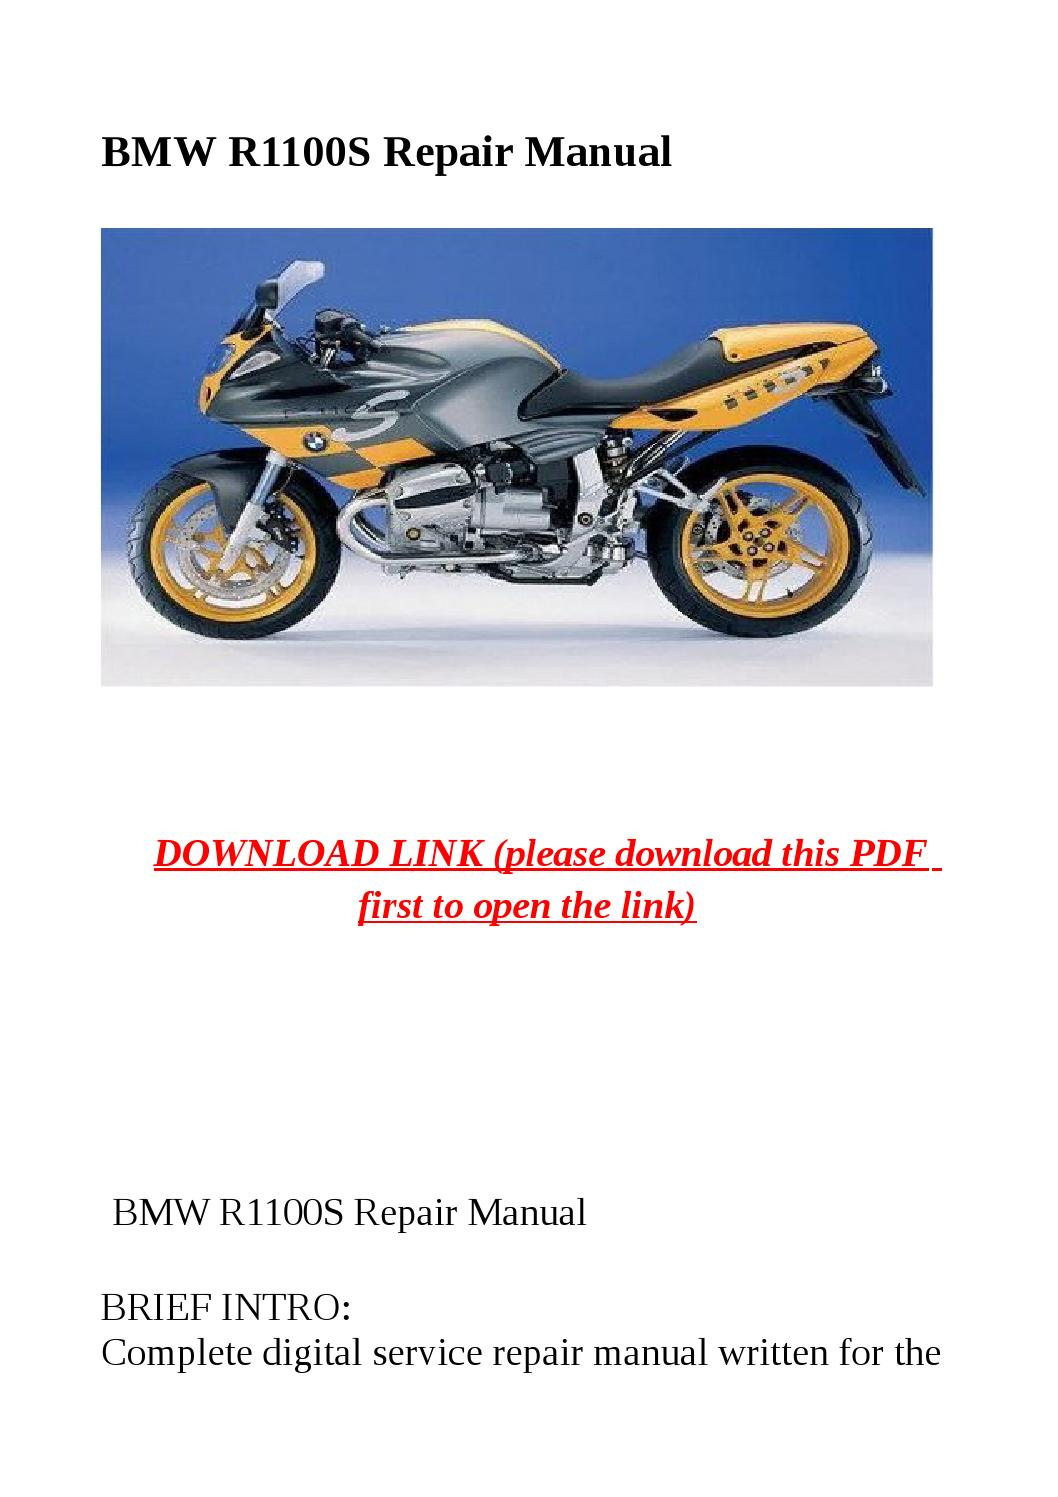 bmw r1100s repair manual by mary jane issuu. Black Bedroom Furniture Sets. Home Design Ideas